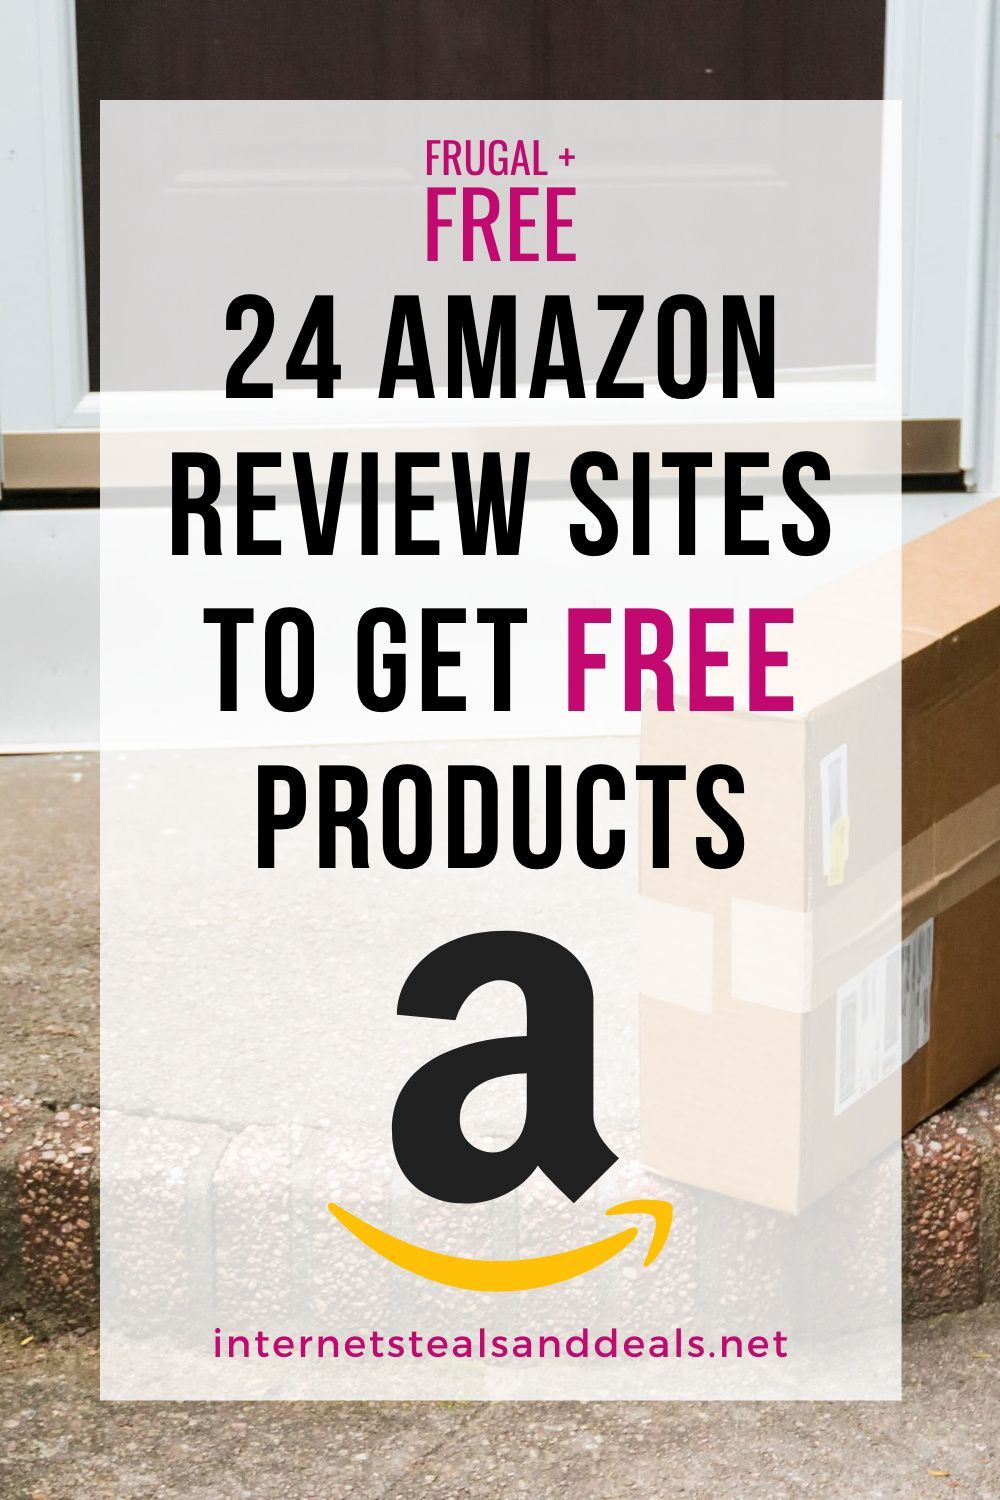 09a801a0f5377019dbb55bdc3ce5d4f6 - How To Get Free Stuff In Exchange For Reviews